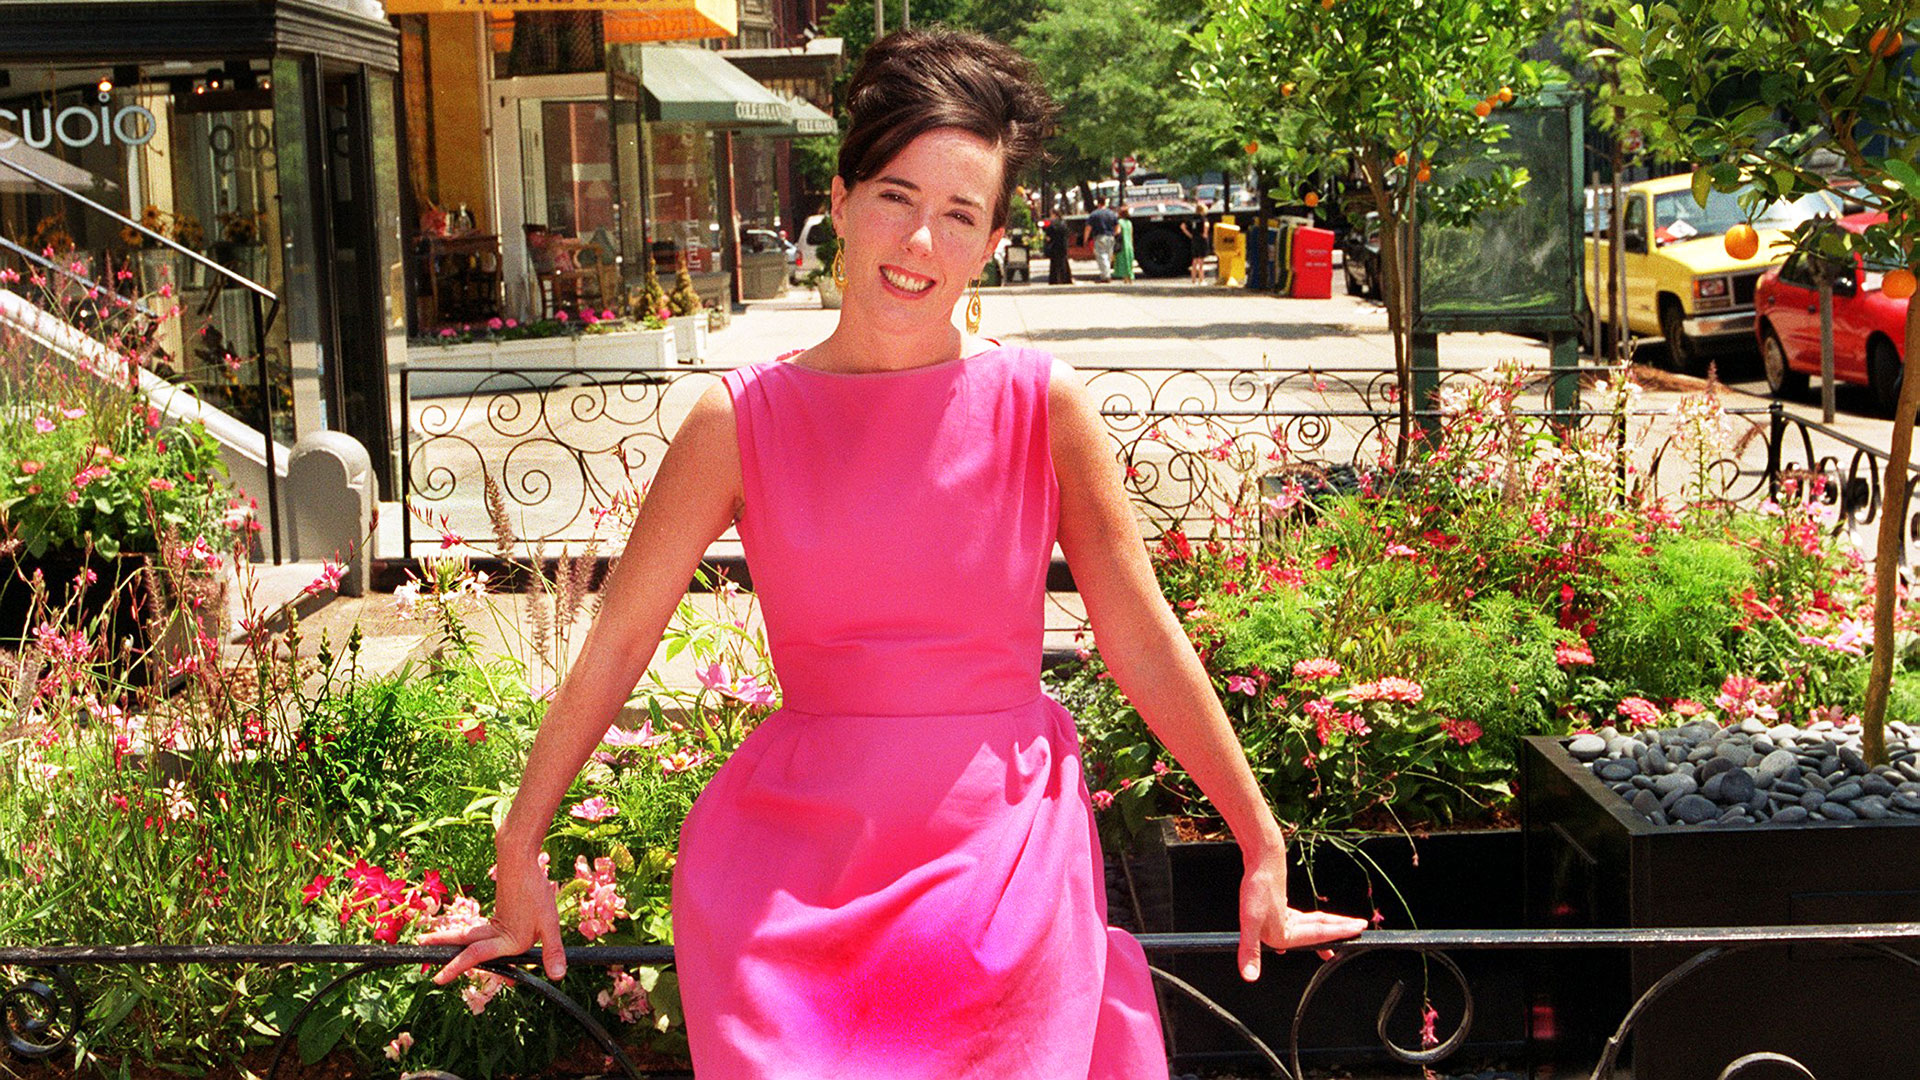 Yes, Suicidal People Like Kate Spade Can Look Like They 'Have It All'